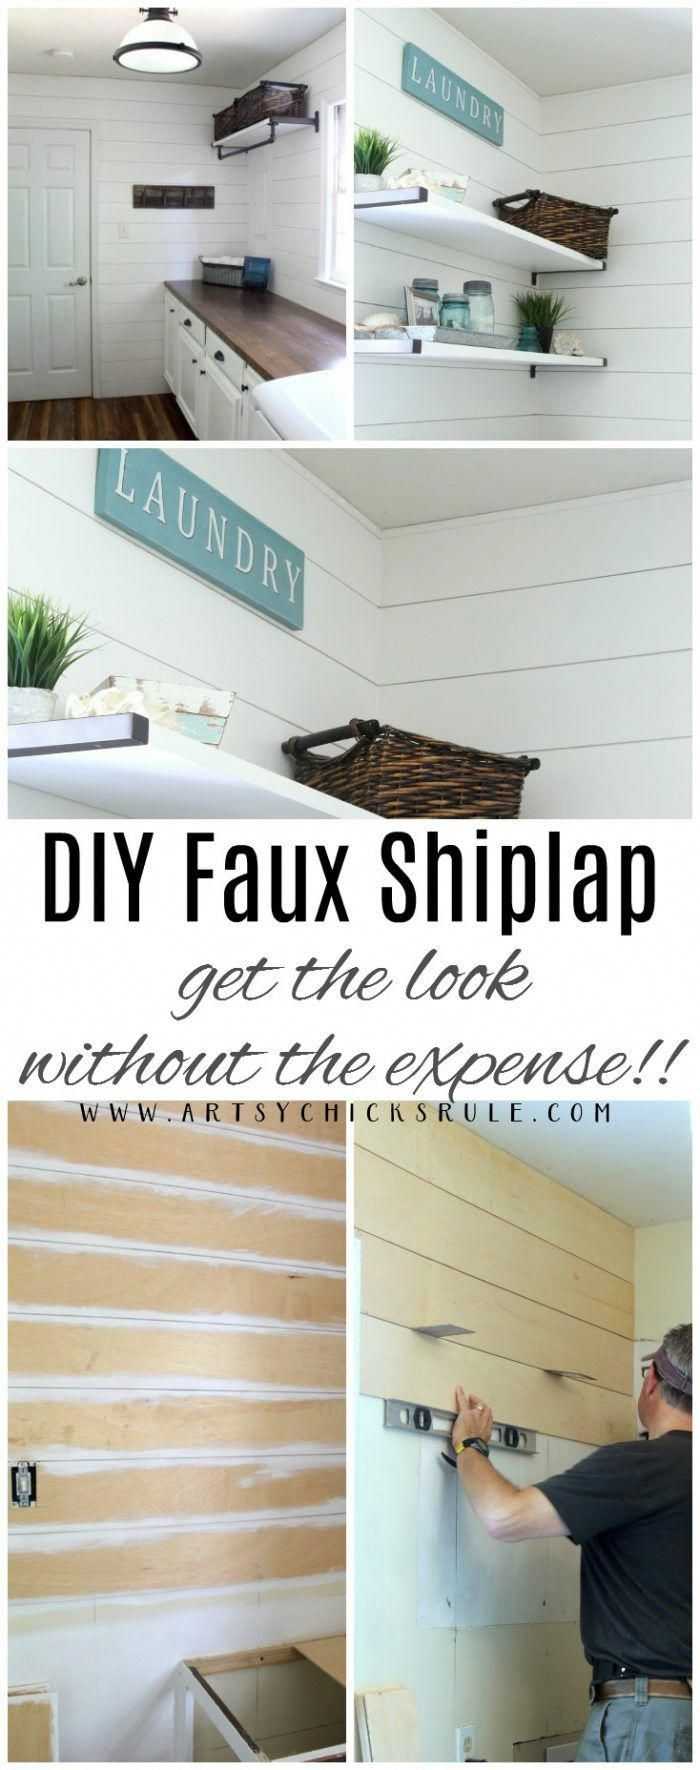 DIY Faux Shiplap (get the look without the expense!)